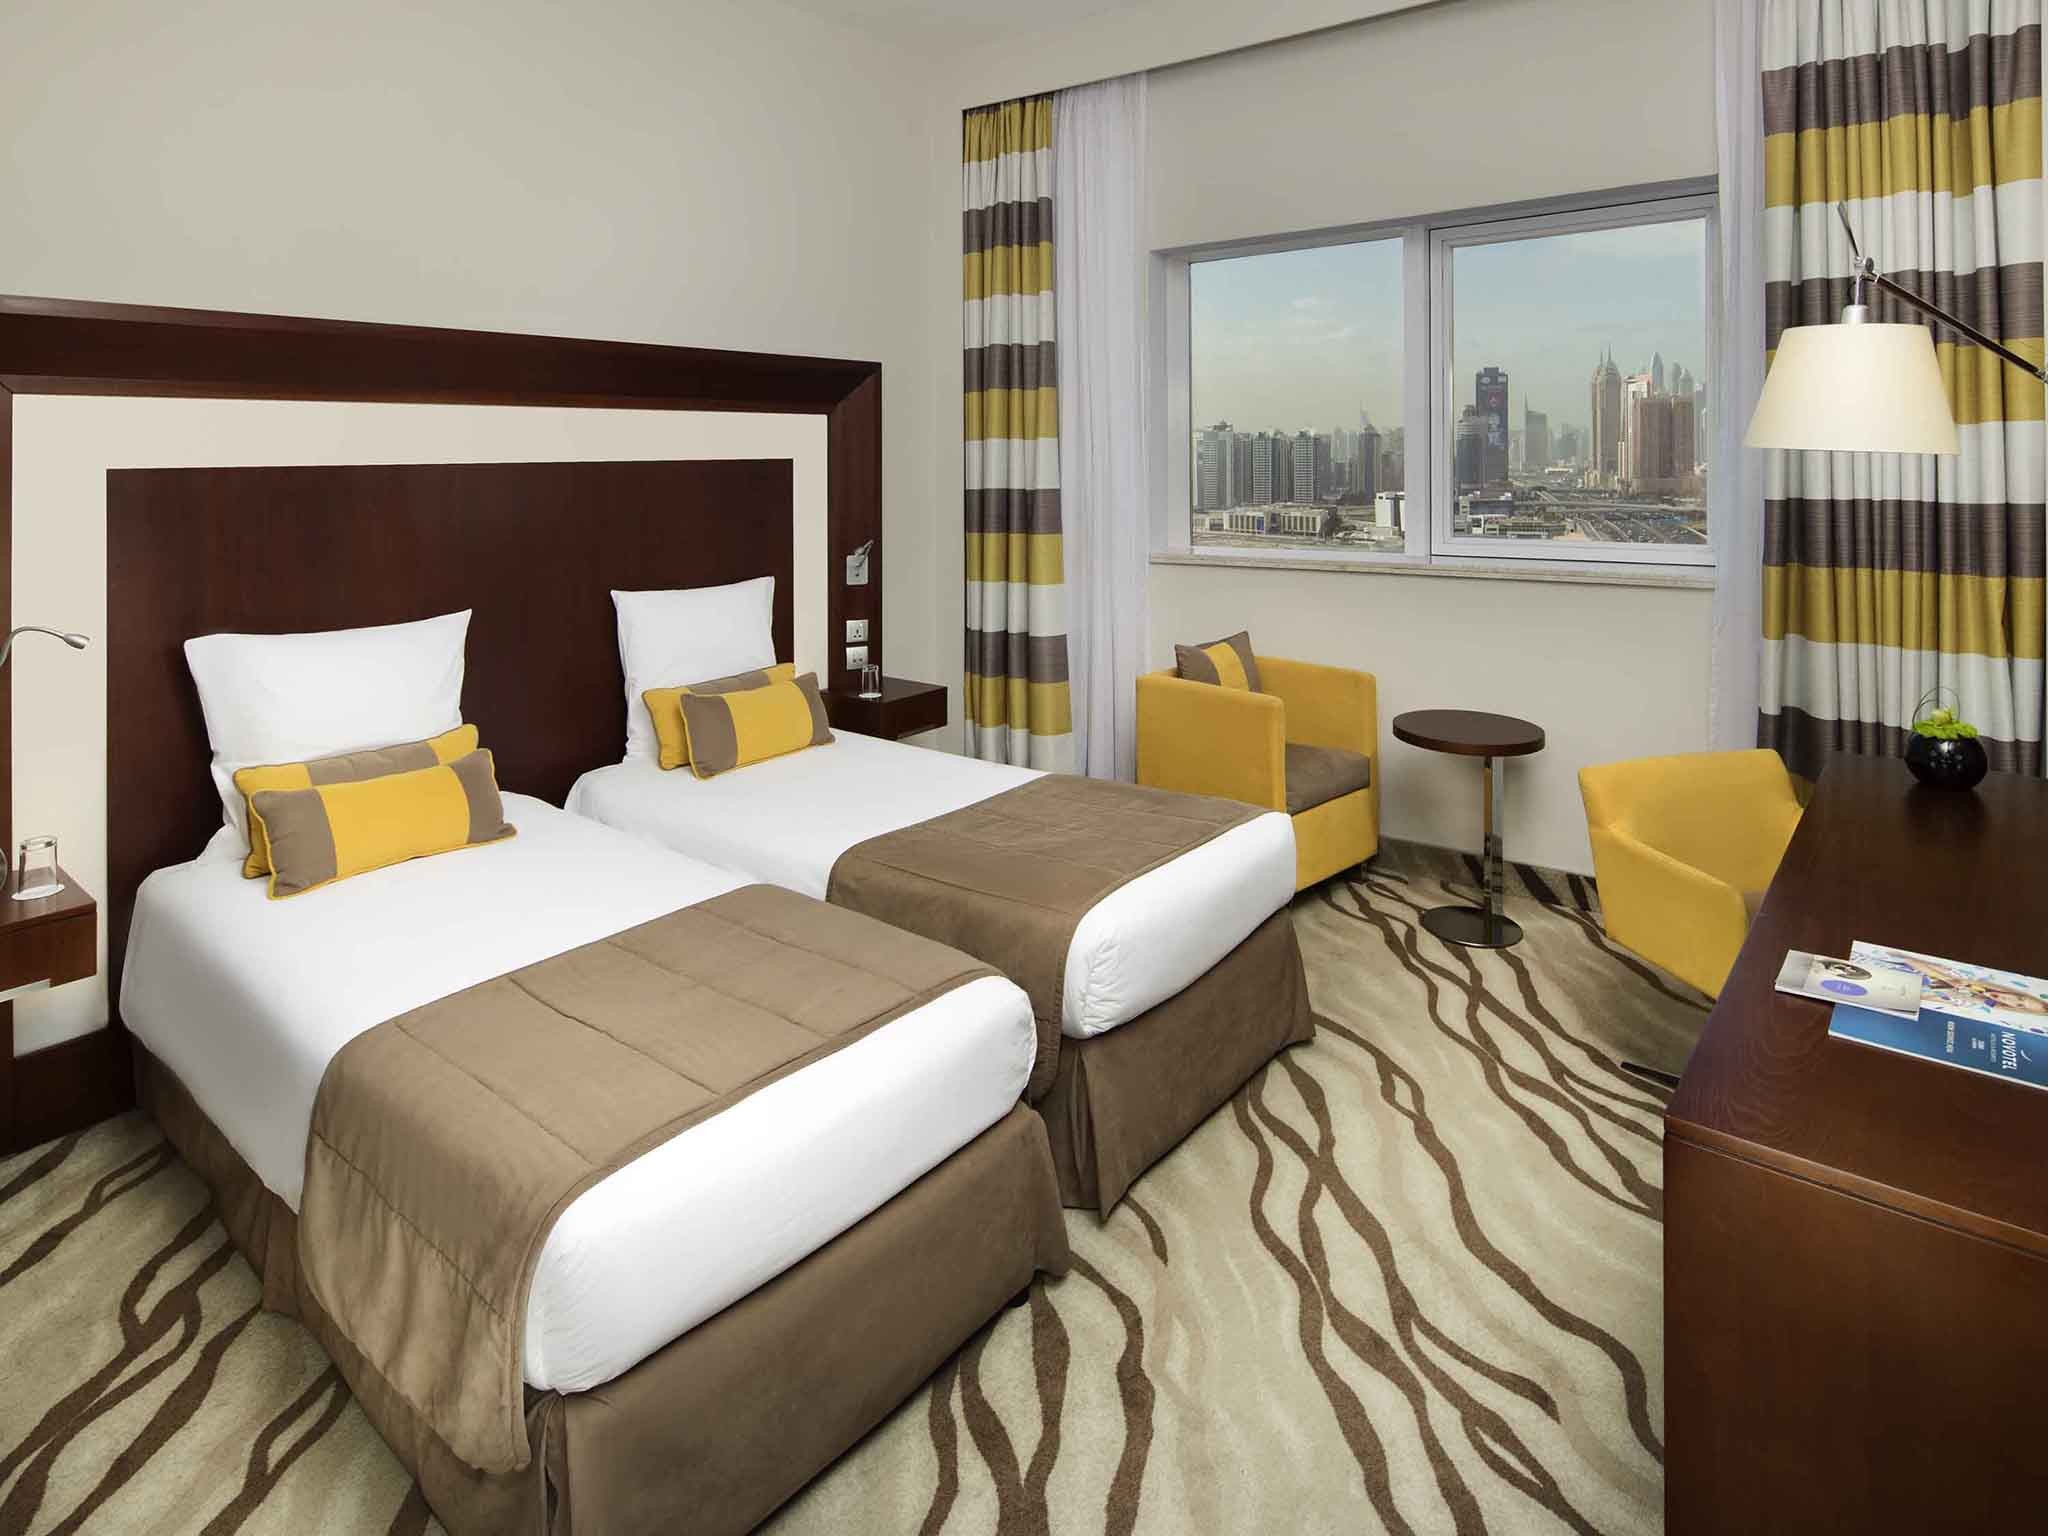 Hotels With Meeting Rooms Near Me